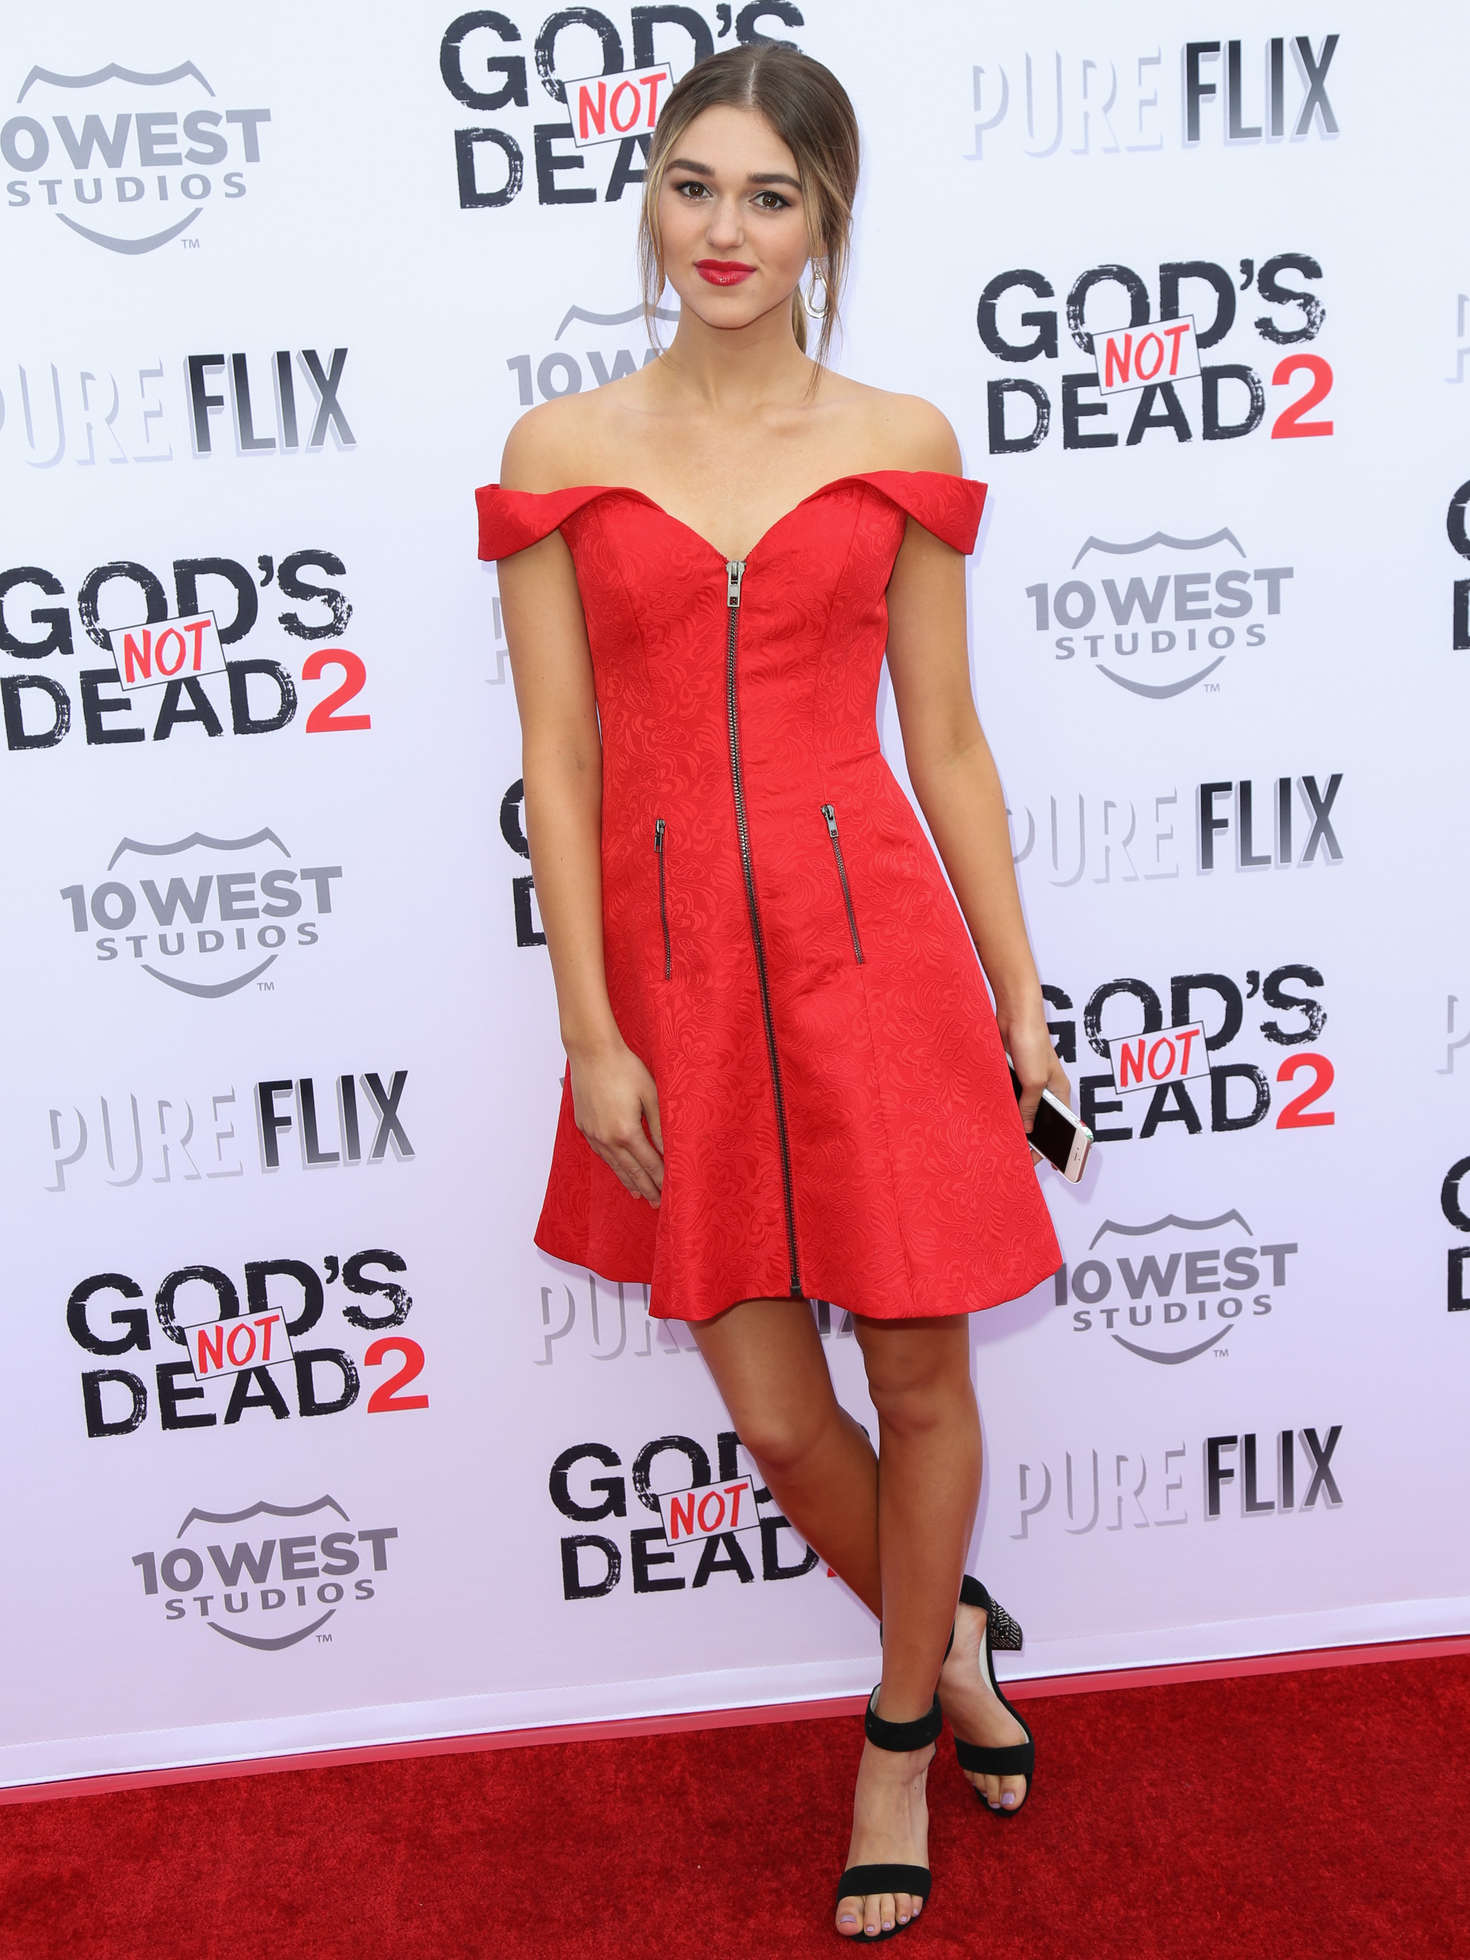 Sadie Robertson Gods Not Dead Premiere in Los Angeles